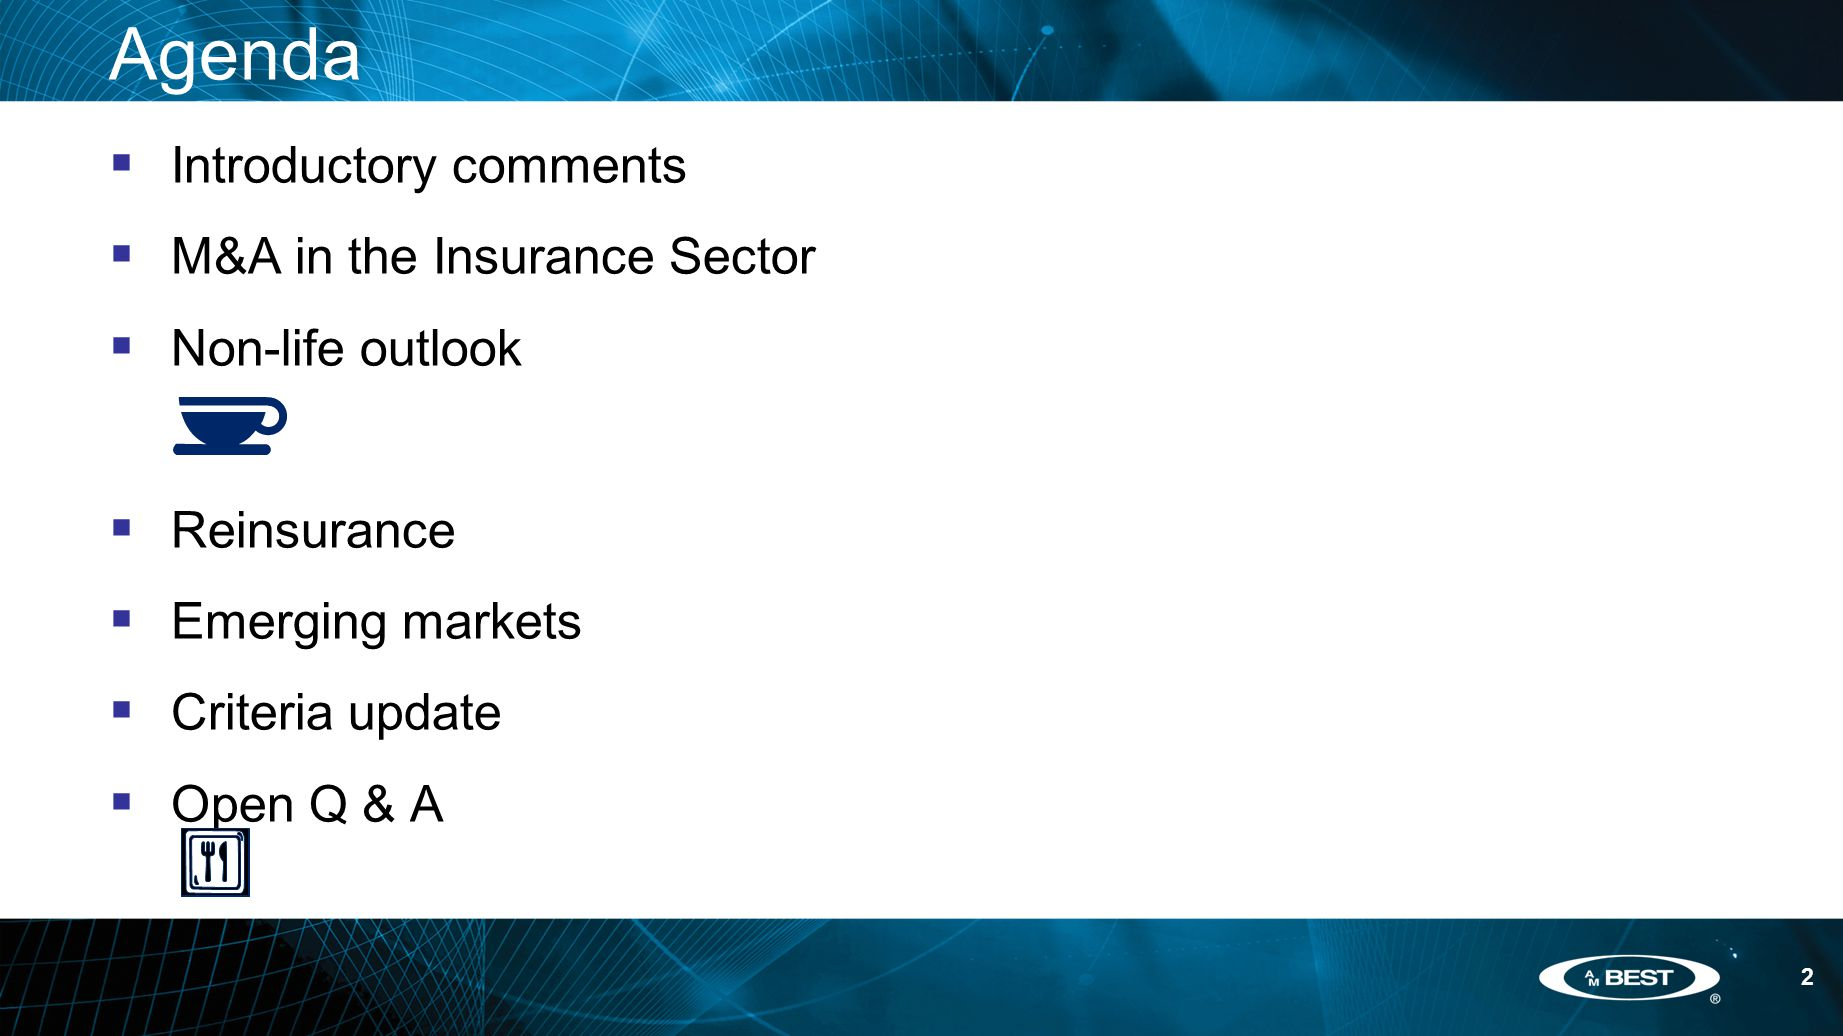 83 KEY FACTOR IN ANALYSIS DUE TO SUDDEN SHOCK TO BALANCE SHEET Catastrophe risk management REQUIREMENTS  PMLs reflect most recent information available  Credible assessment of catastrophe risk based on worldwide exposures  No requirement to use a specific model or multiple models  Options selected for demand surge, storm surge, fire following earthquakes, Atlantic Multi-Decadal Oscillation and secondary uncertainty DISCUSSIONS WITH MANAGEMENT  Materiality of change relative to capital requirements  Overall approach to risk management  Management's view of model changes relative to book of business  Planned actions to mitigate exposure